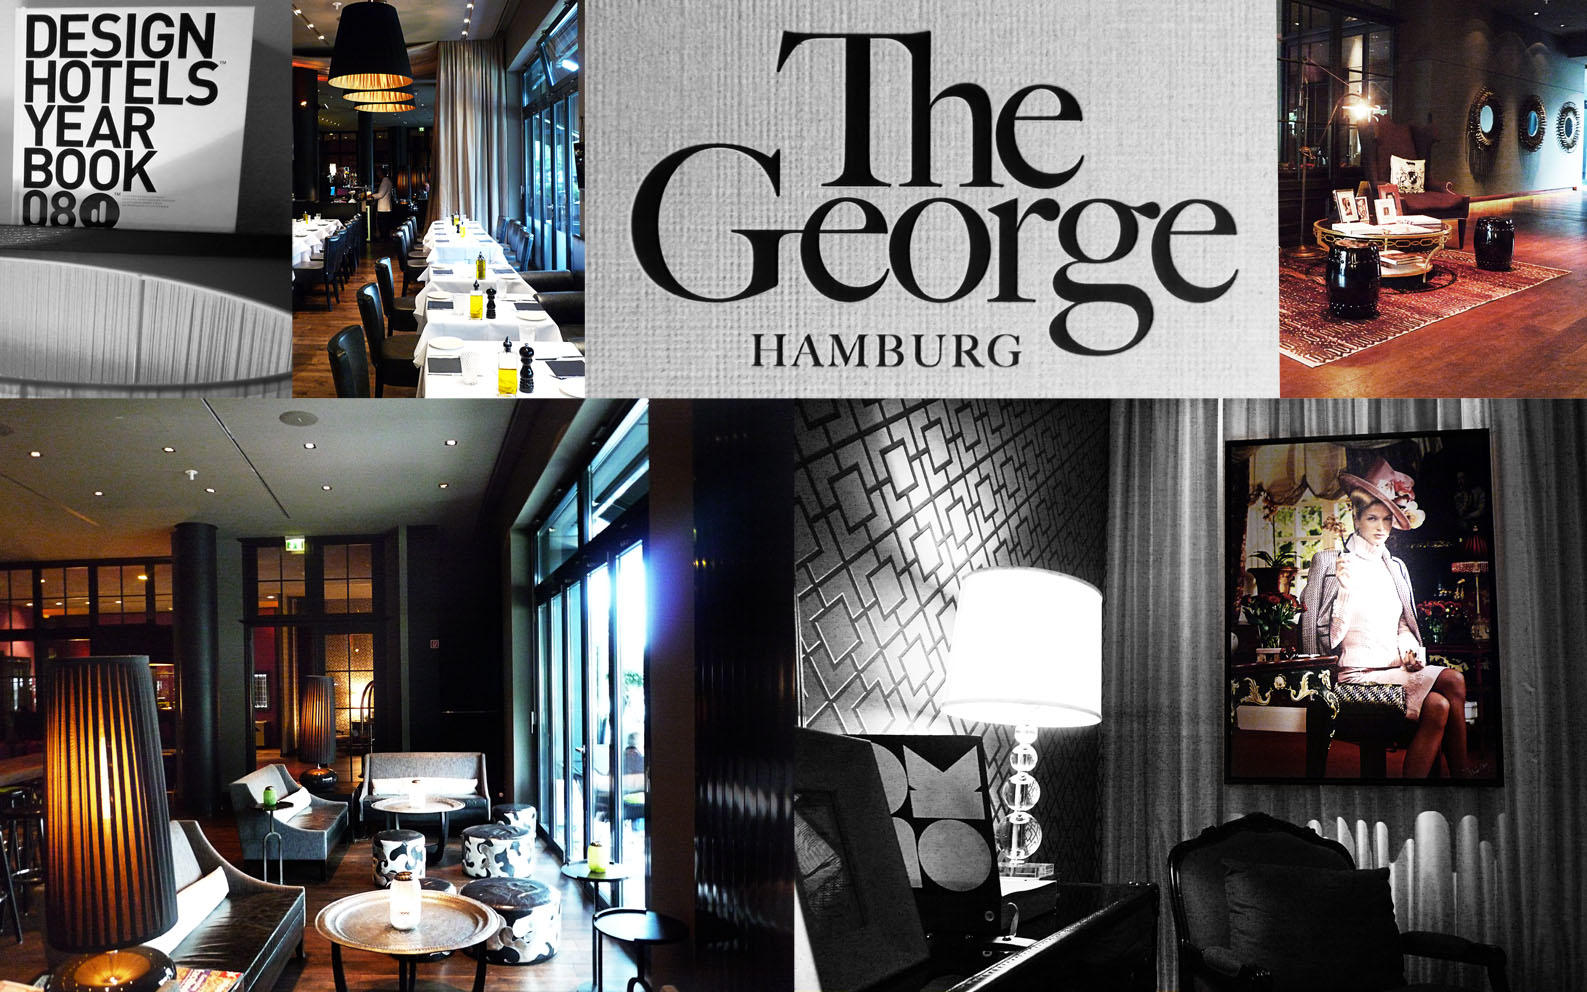 Hotel The George (Hambourg)2.jpg